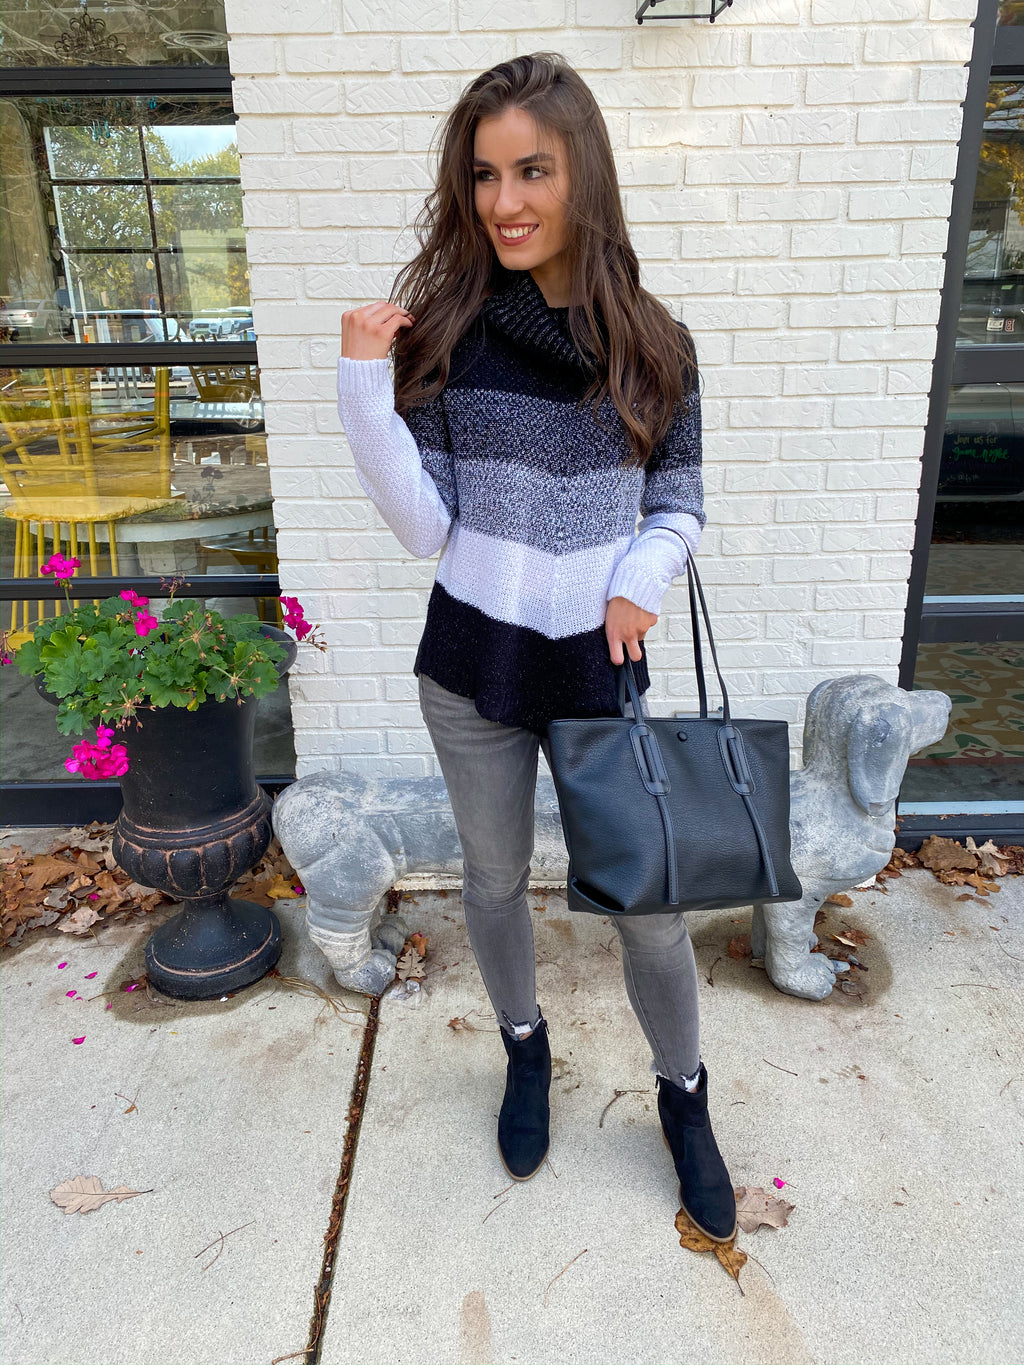 "<img src=""Shimmery-Multi-Color-Sweater-Front.jpg"" alt=""shimmery multi color sweater front view"">"